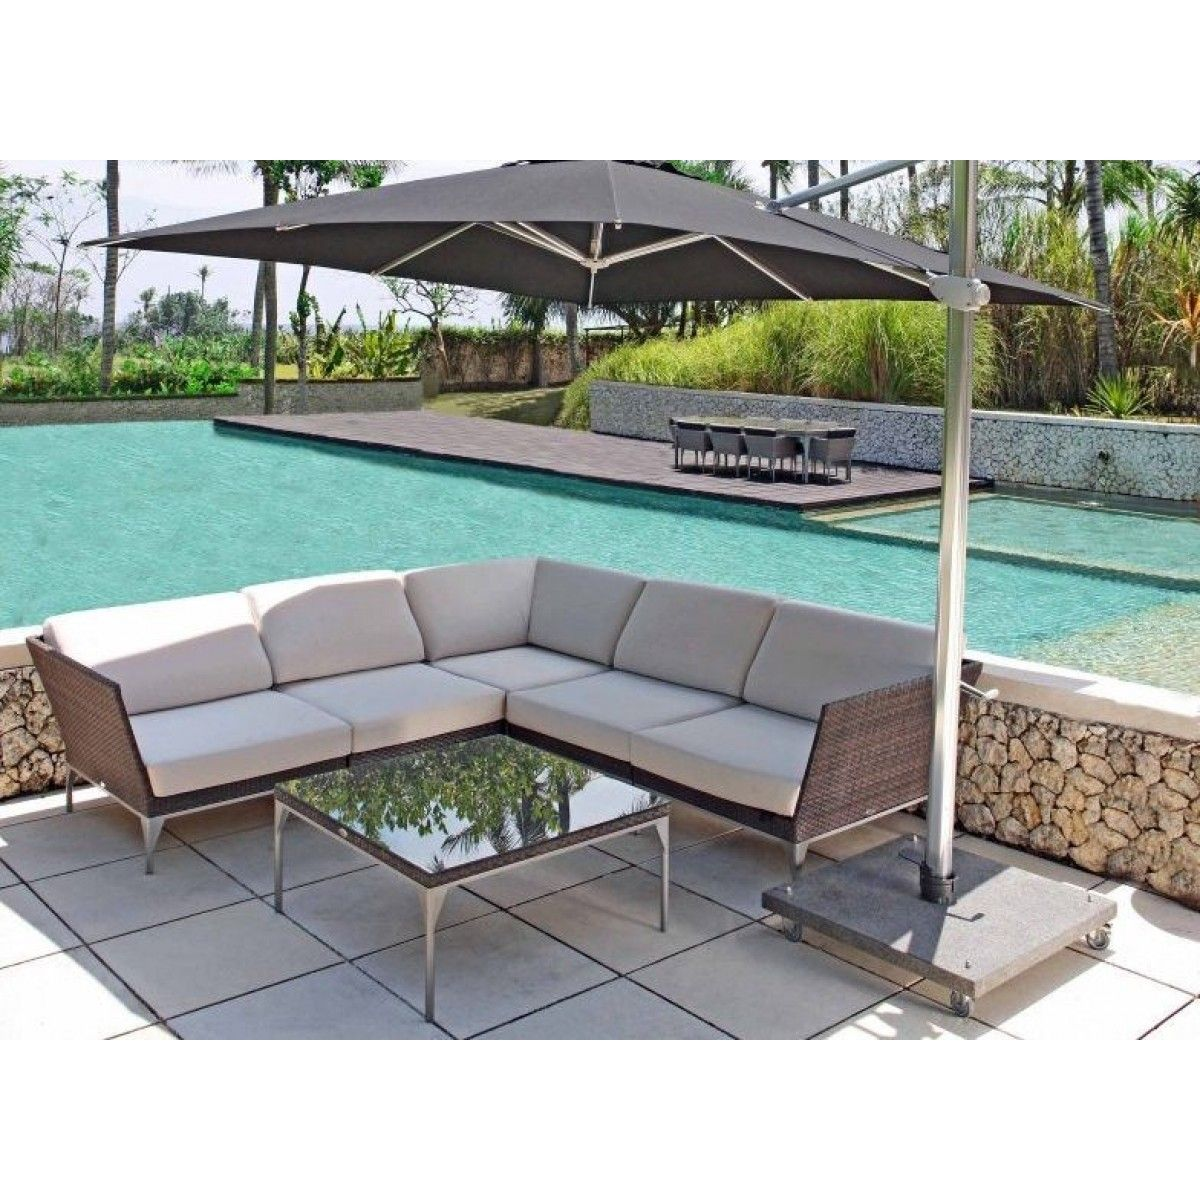 Skyline Brafta Modular Outdoor Lounge Seating Range #uberinteriors